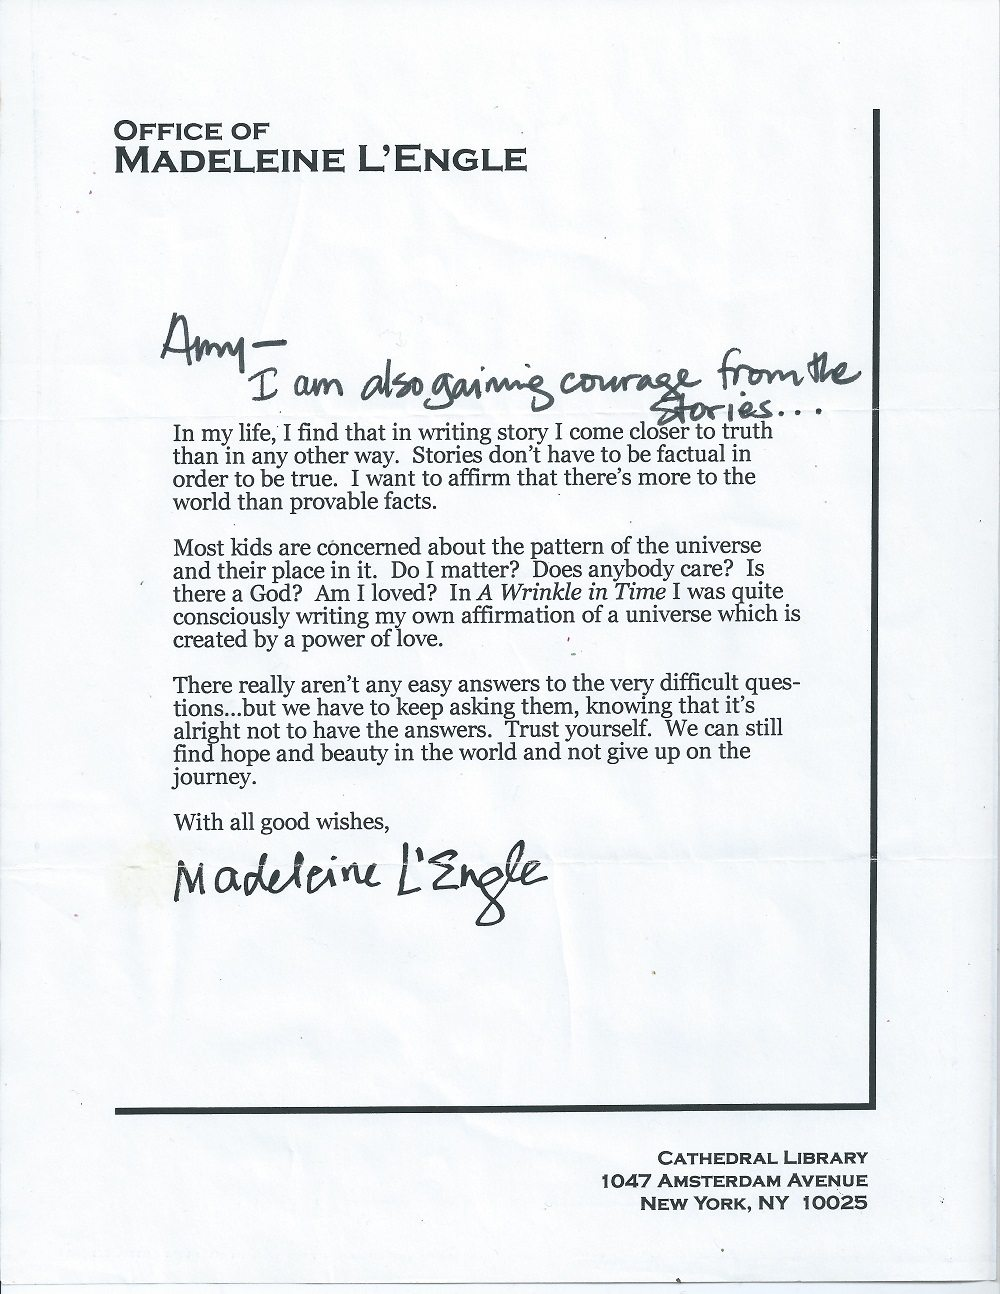 Letter from Madeleine Lengle as received by Amy Matviya in November 2001